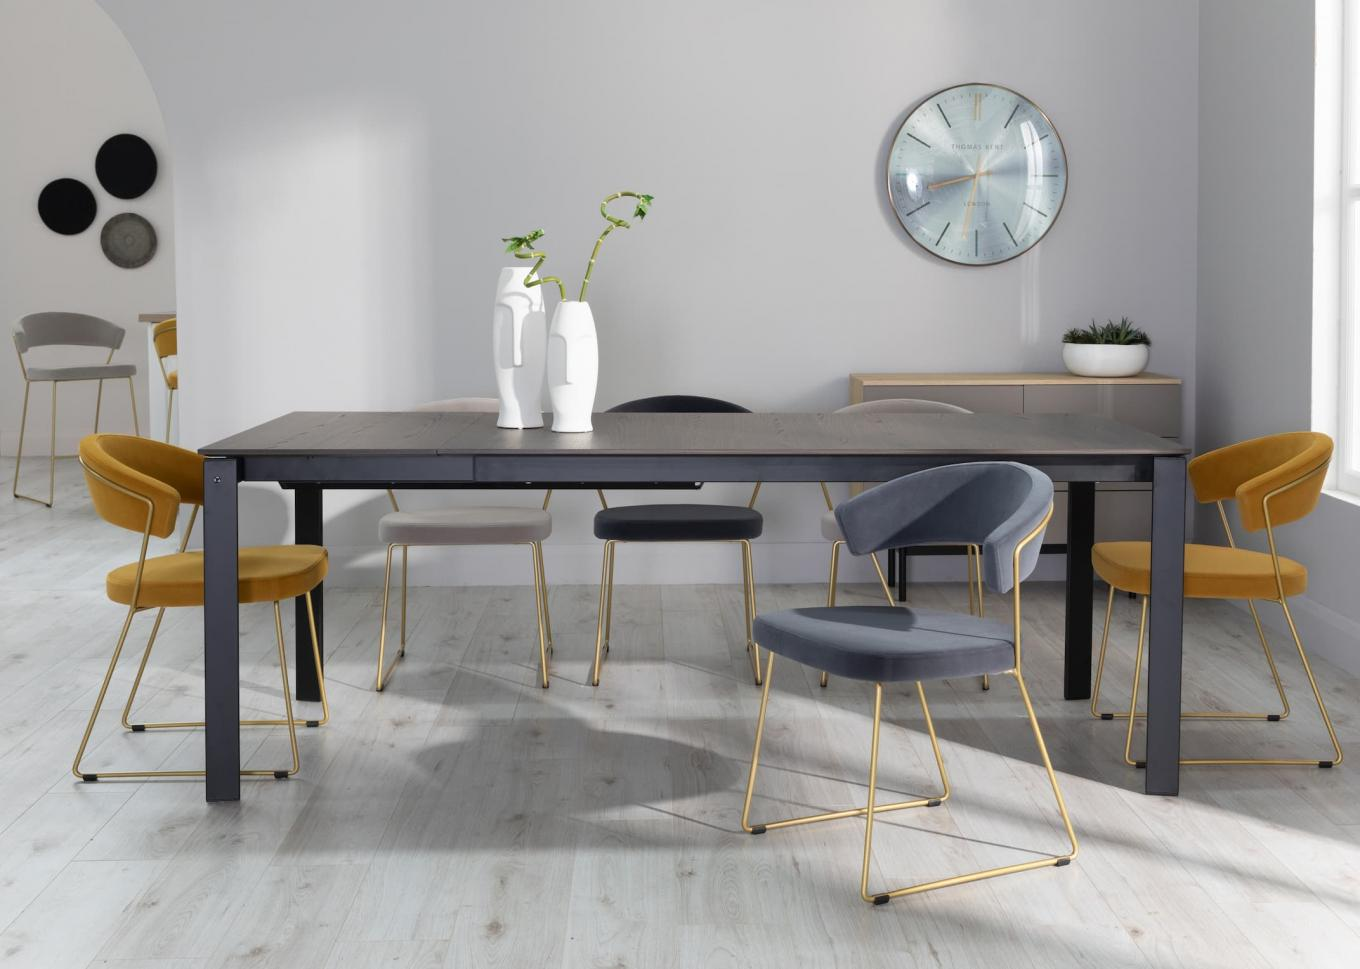 New York Chairs & Eminence Table Lookbook